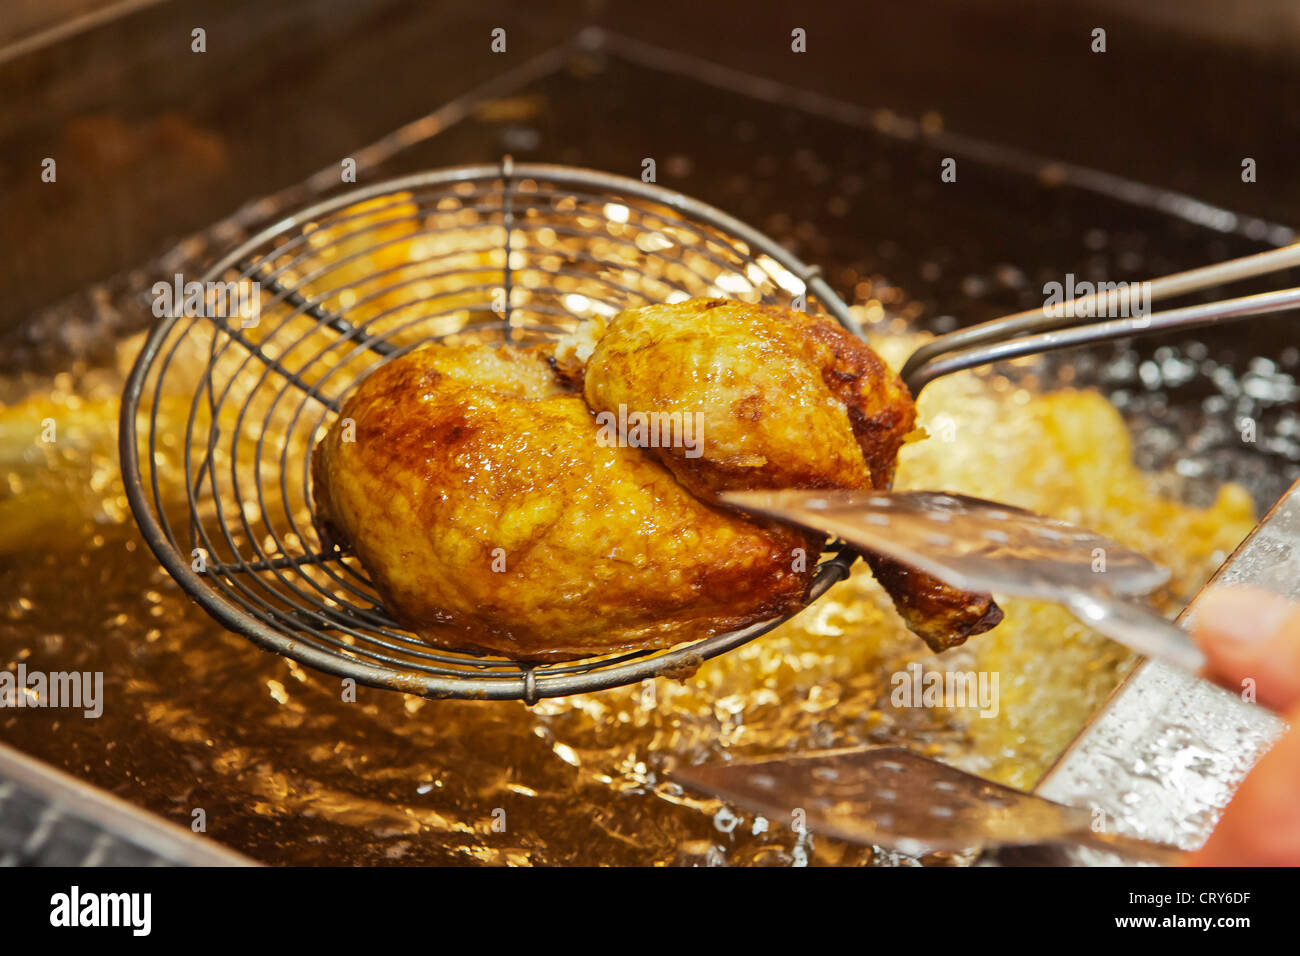 Quarter of chicken coming out of the fryer. - Stock Image